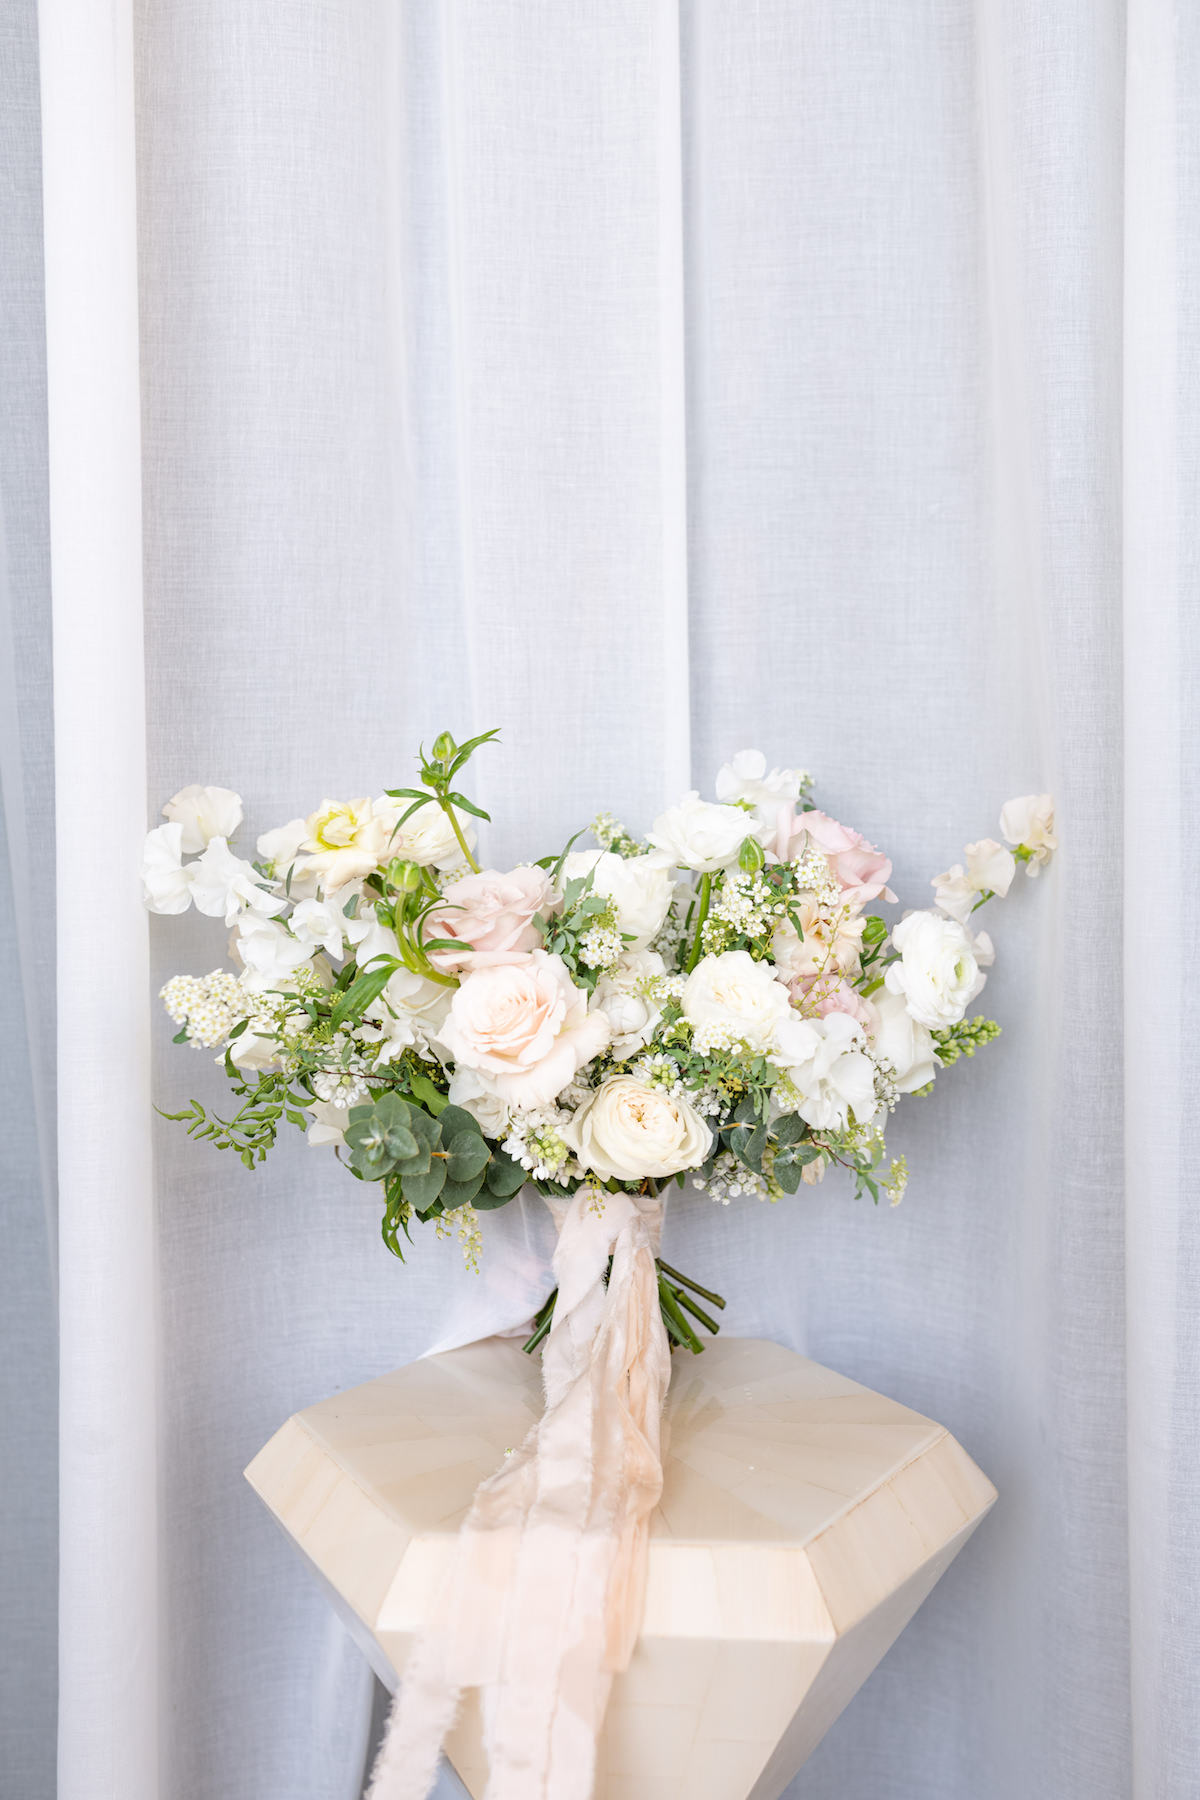 Romantic spring wedding bouquet with white flowers and roses - Holly Sigafoos Photo